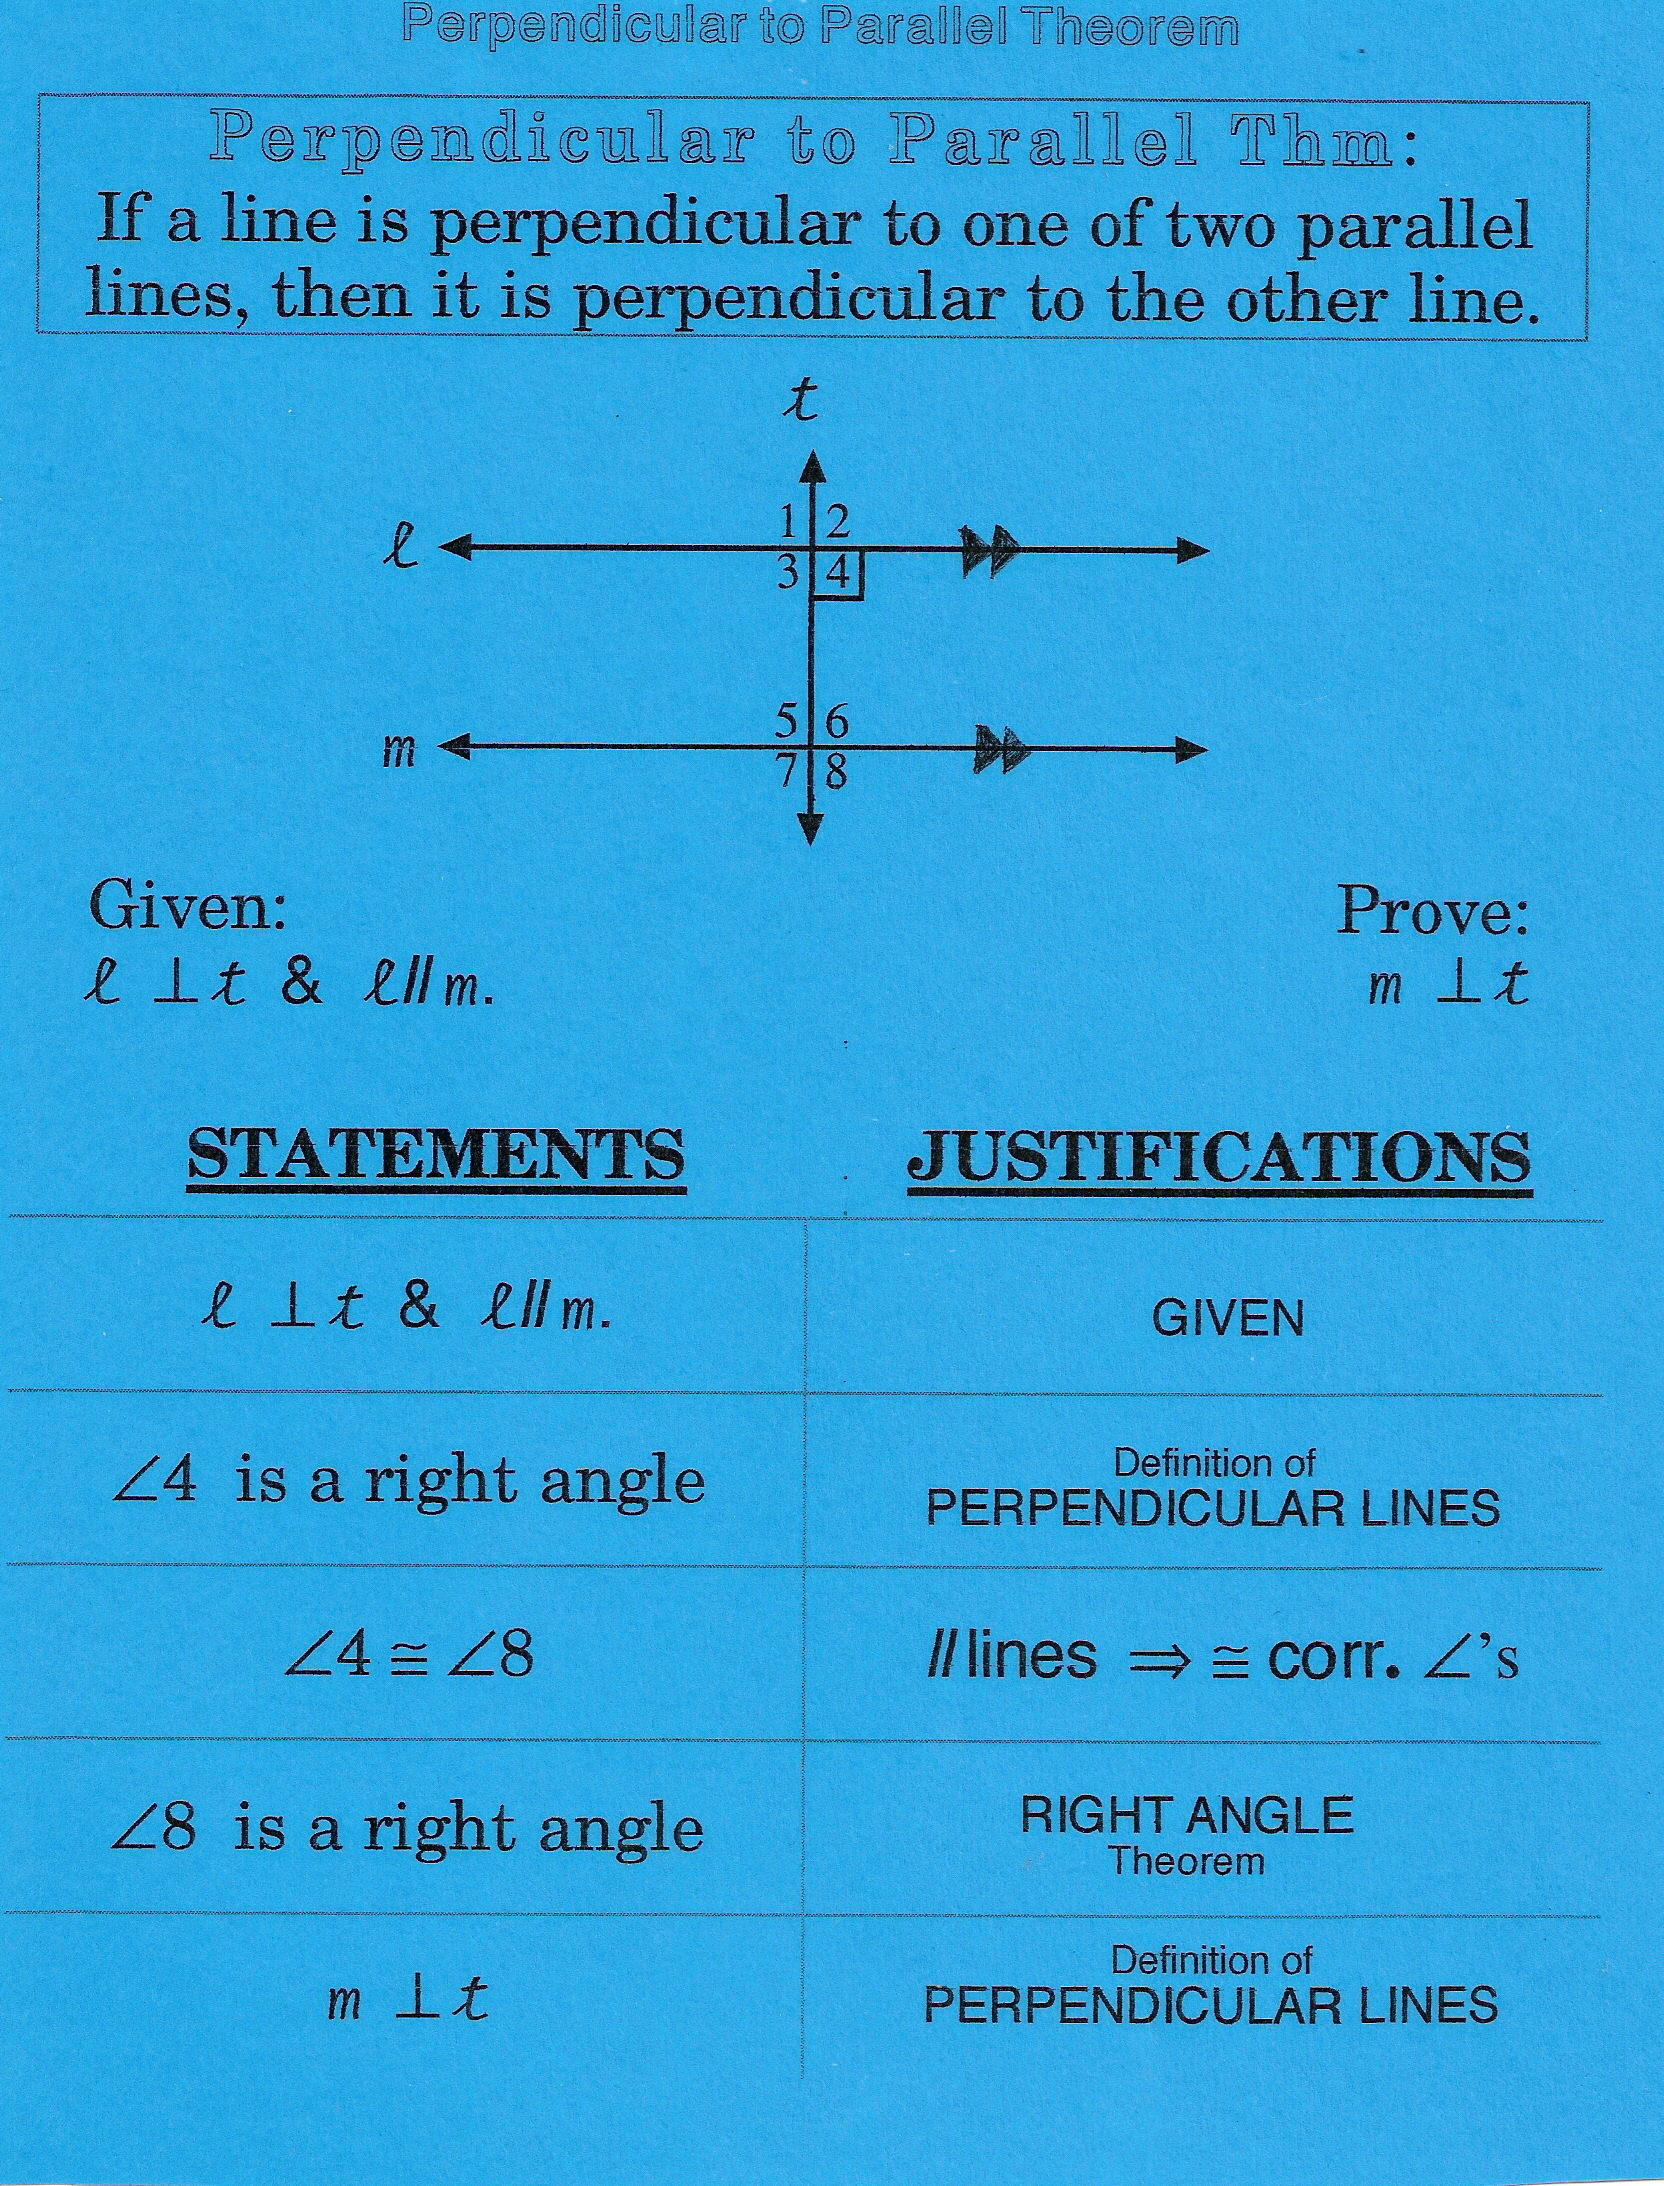 Perpendicular to Parallel